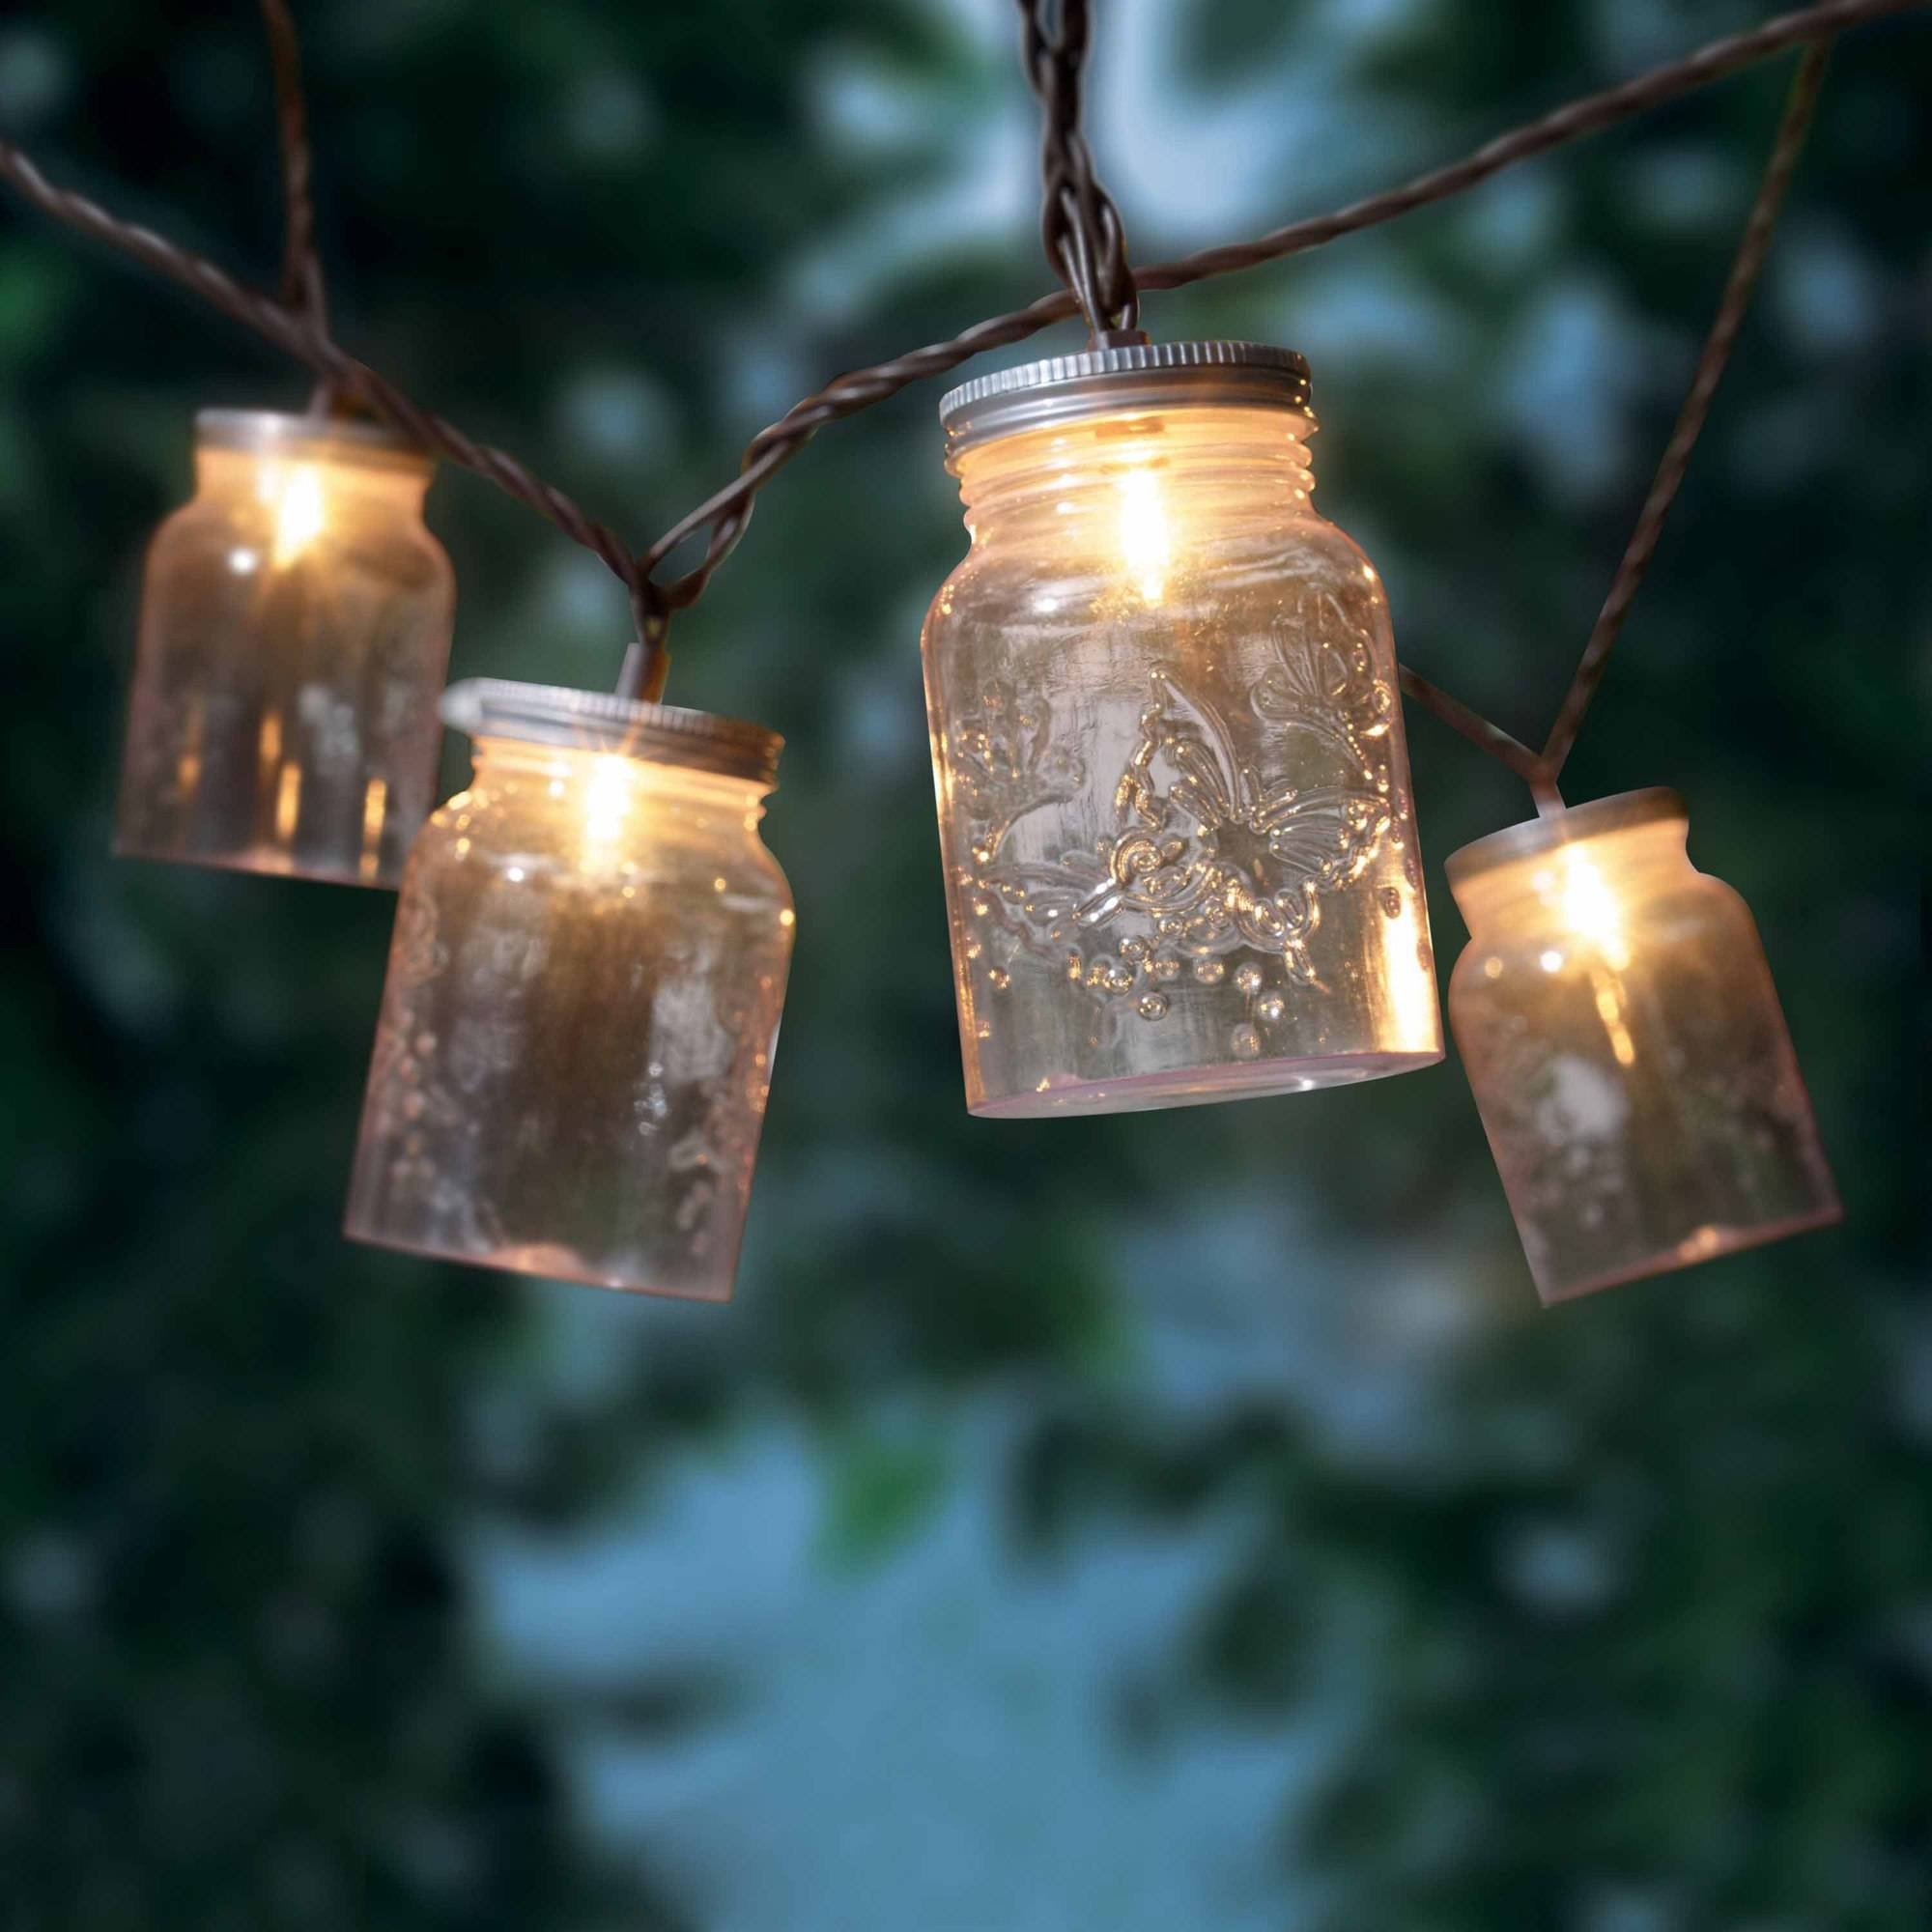 2019 Outdoor Wall Lighting At Walmart Pertaining To Mainstays Mason Jar Mini String Lights, 10 Count – Walmart (View 1 of 20)